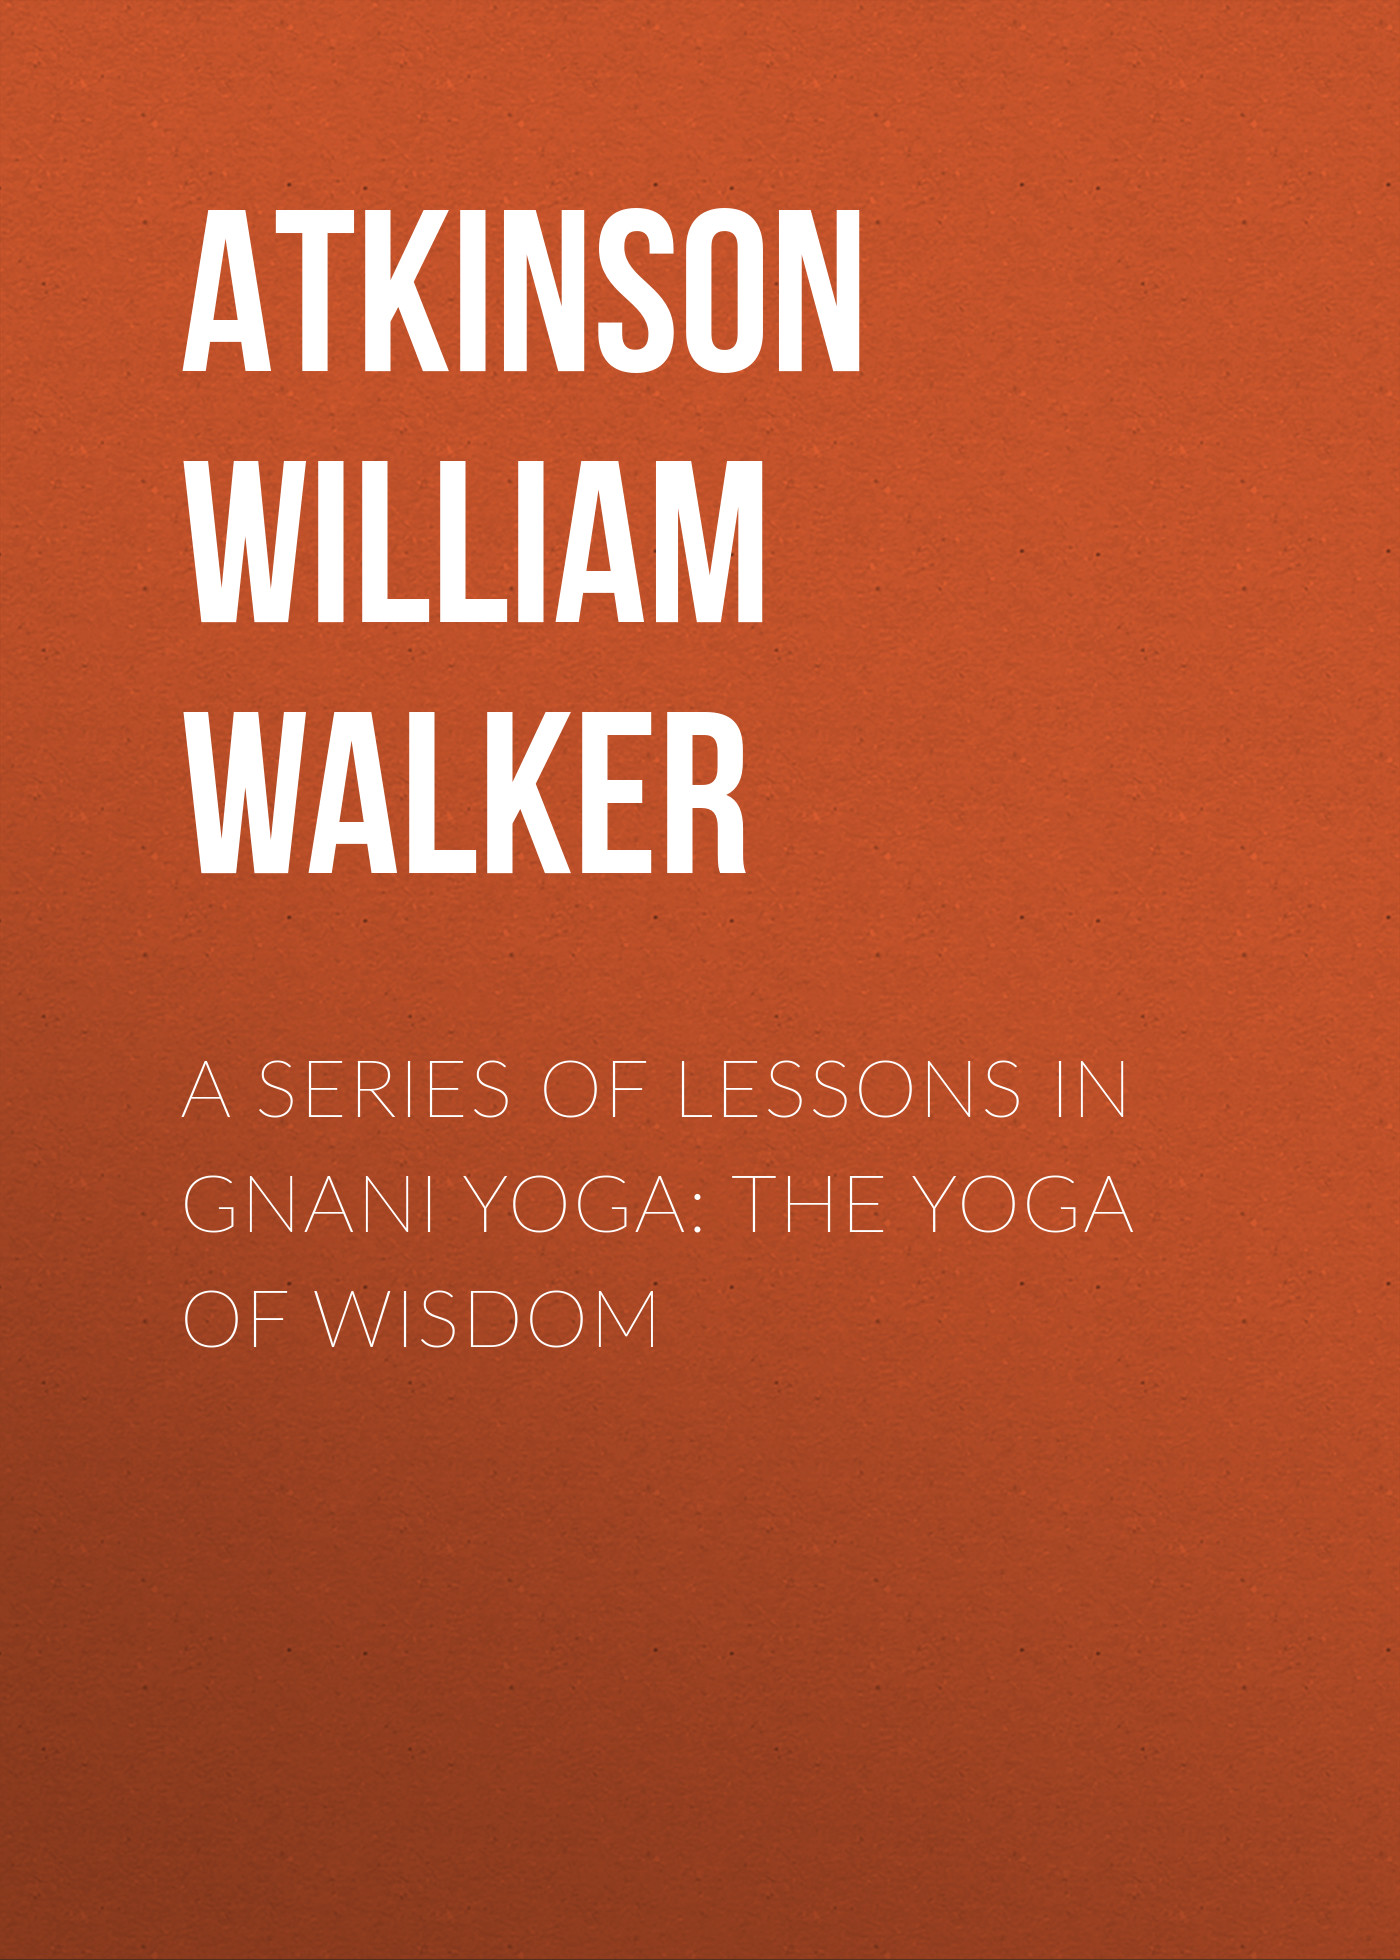 Atkinson William Walker A Series of Lessons in Gnani Yoga: The Yoga of Wisdom roots of yoga